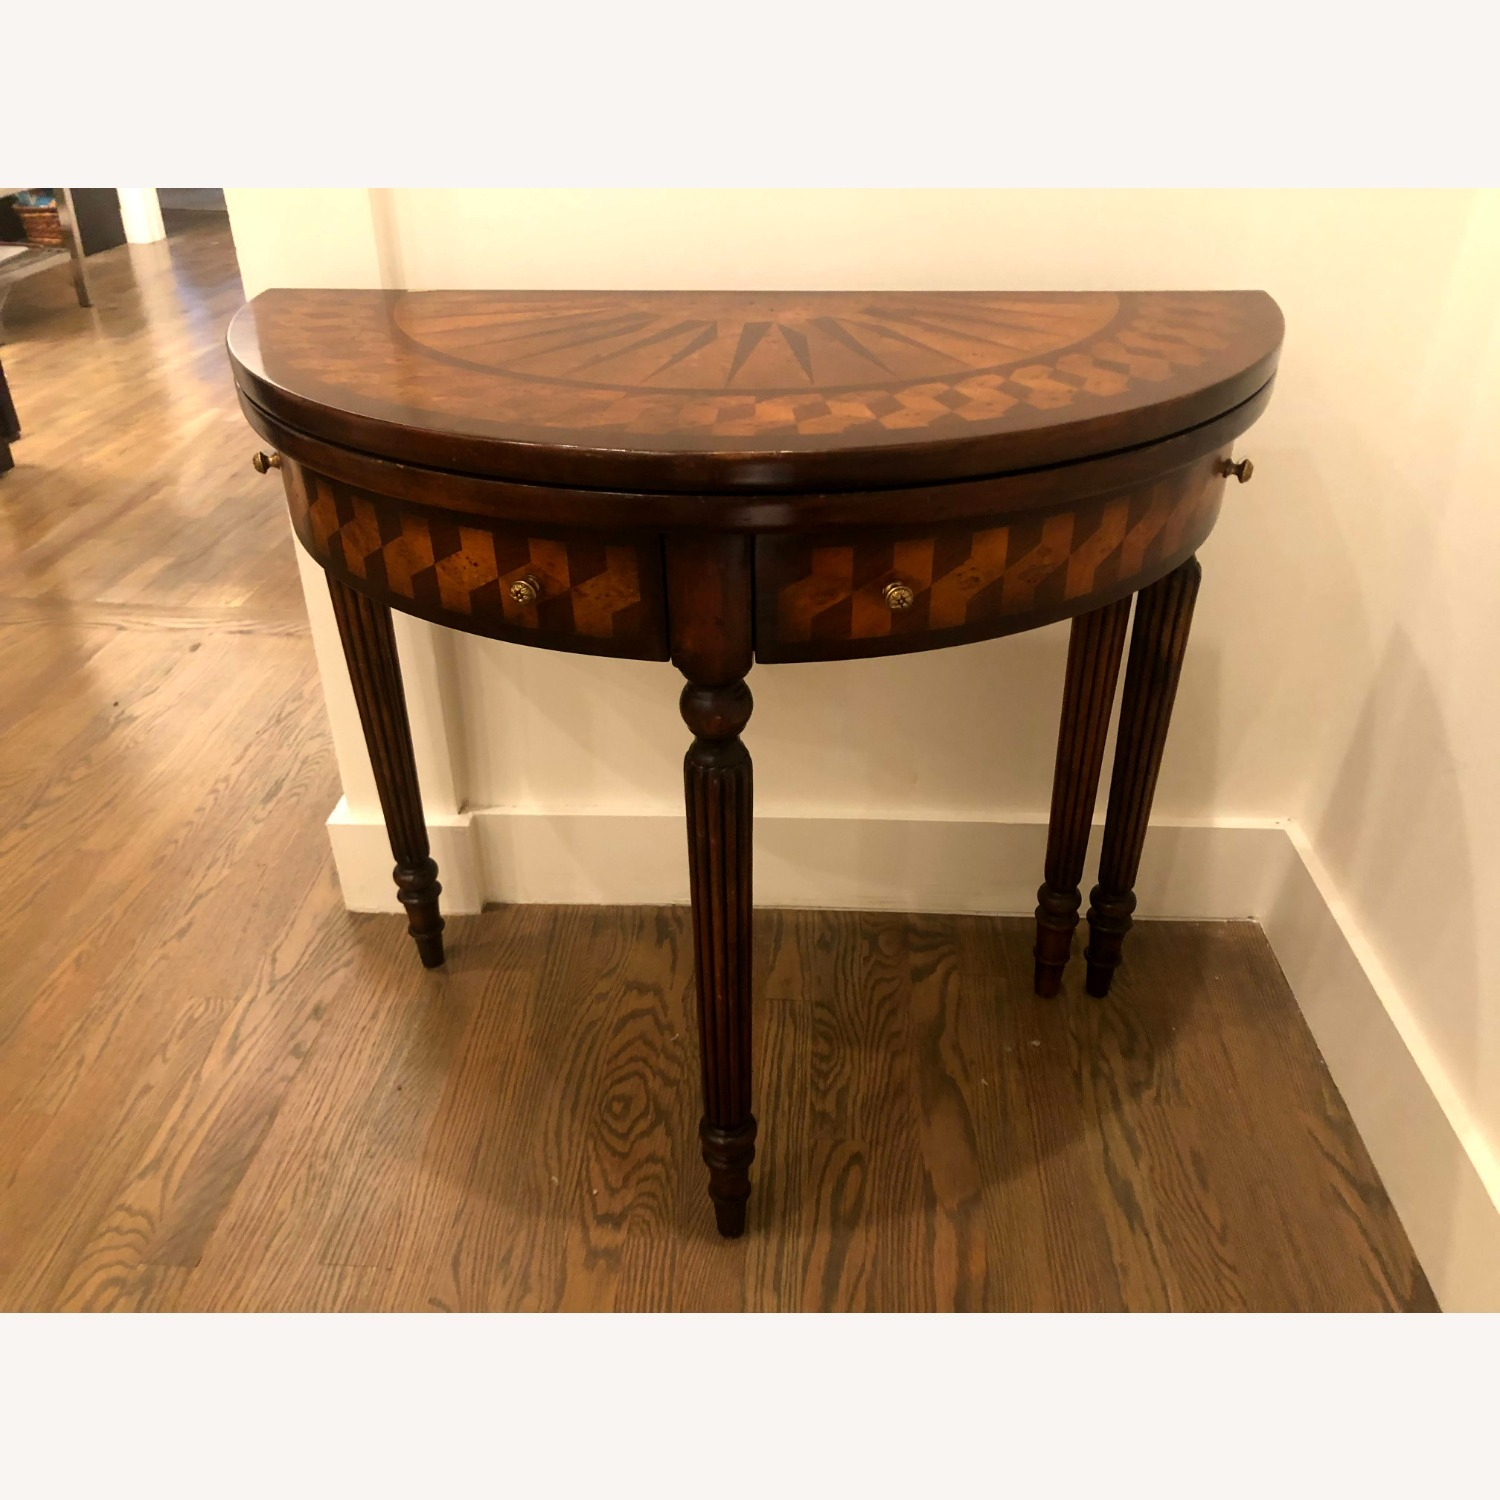 CISCO Brothers Demi-lune Table - image-2